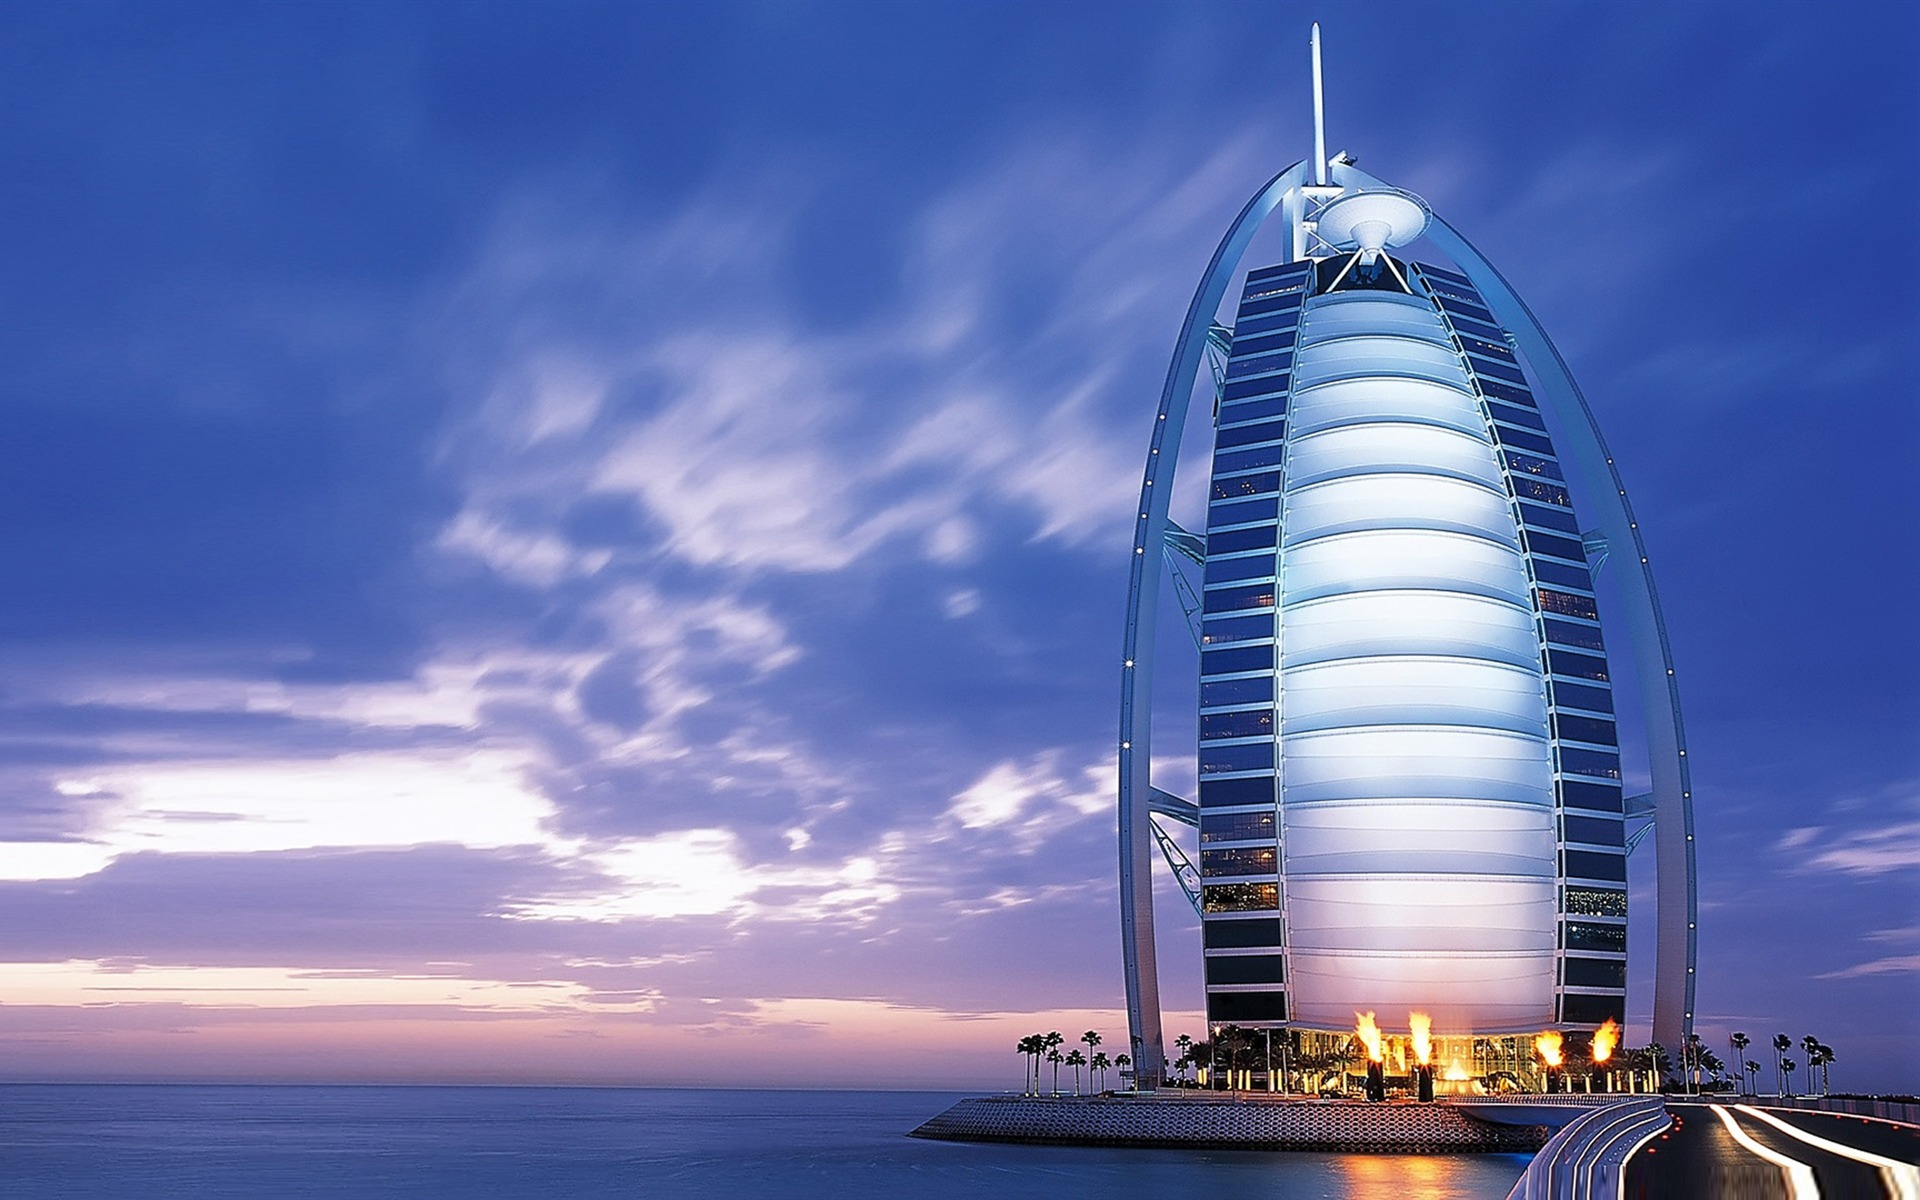 Burj Al Arab Dubai City Landscape Photography Desktop Hd